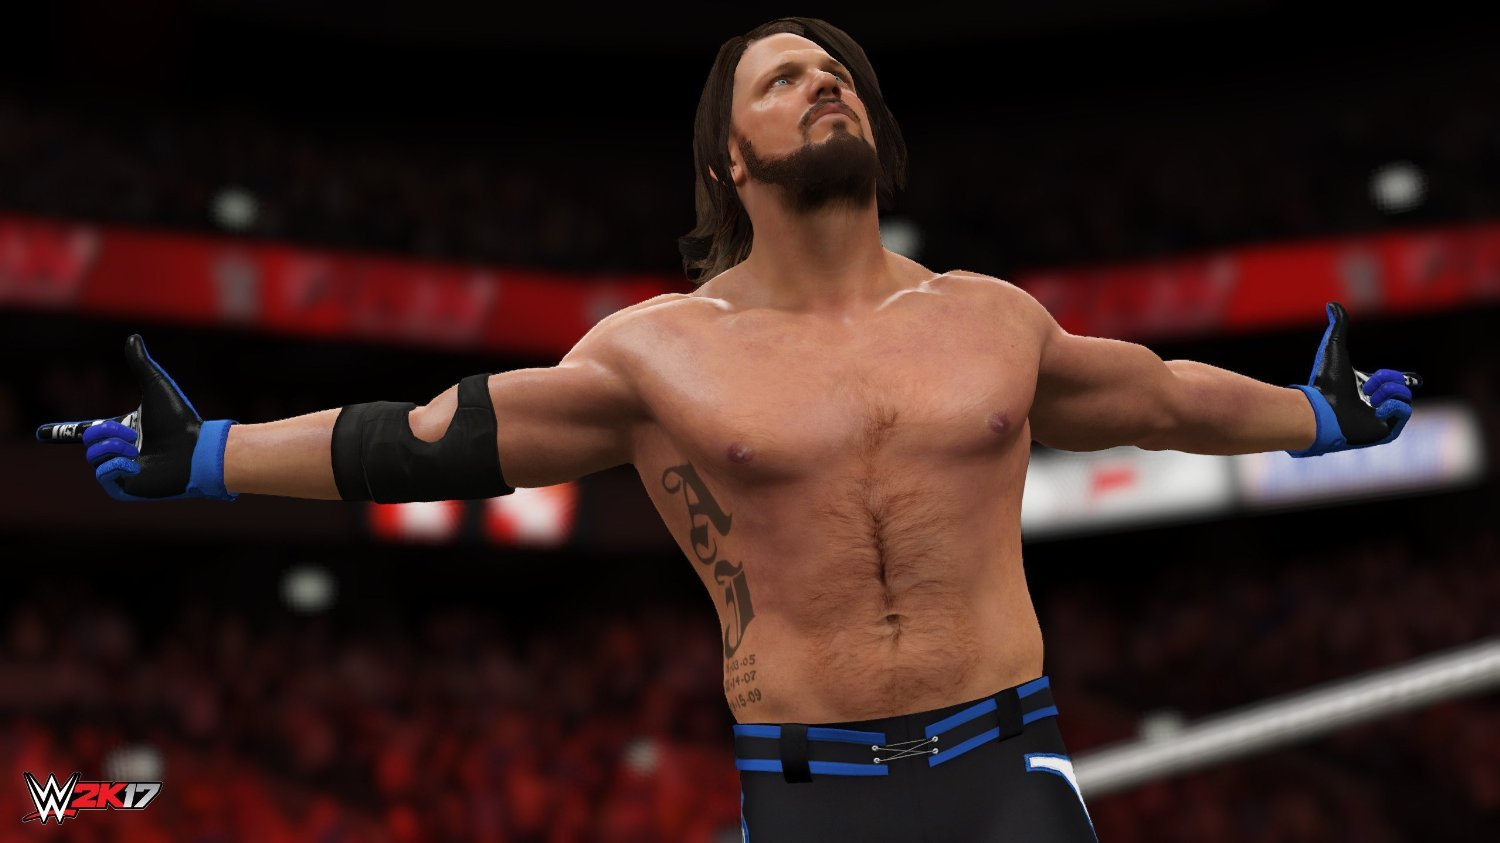 Wwe 2K17 (Ps4) Review 4